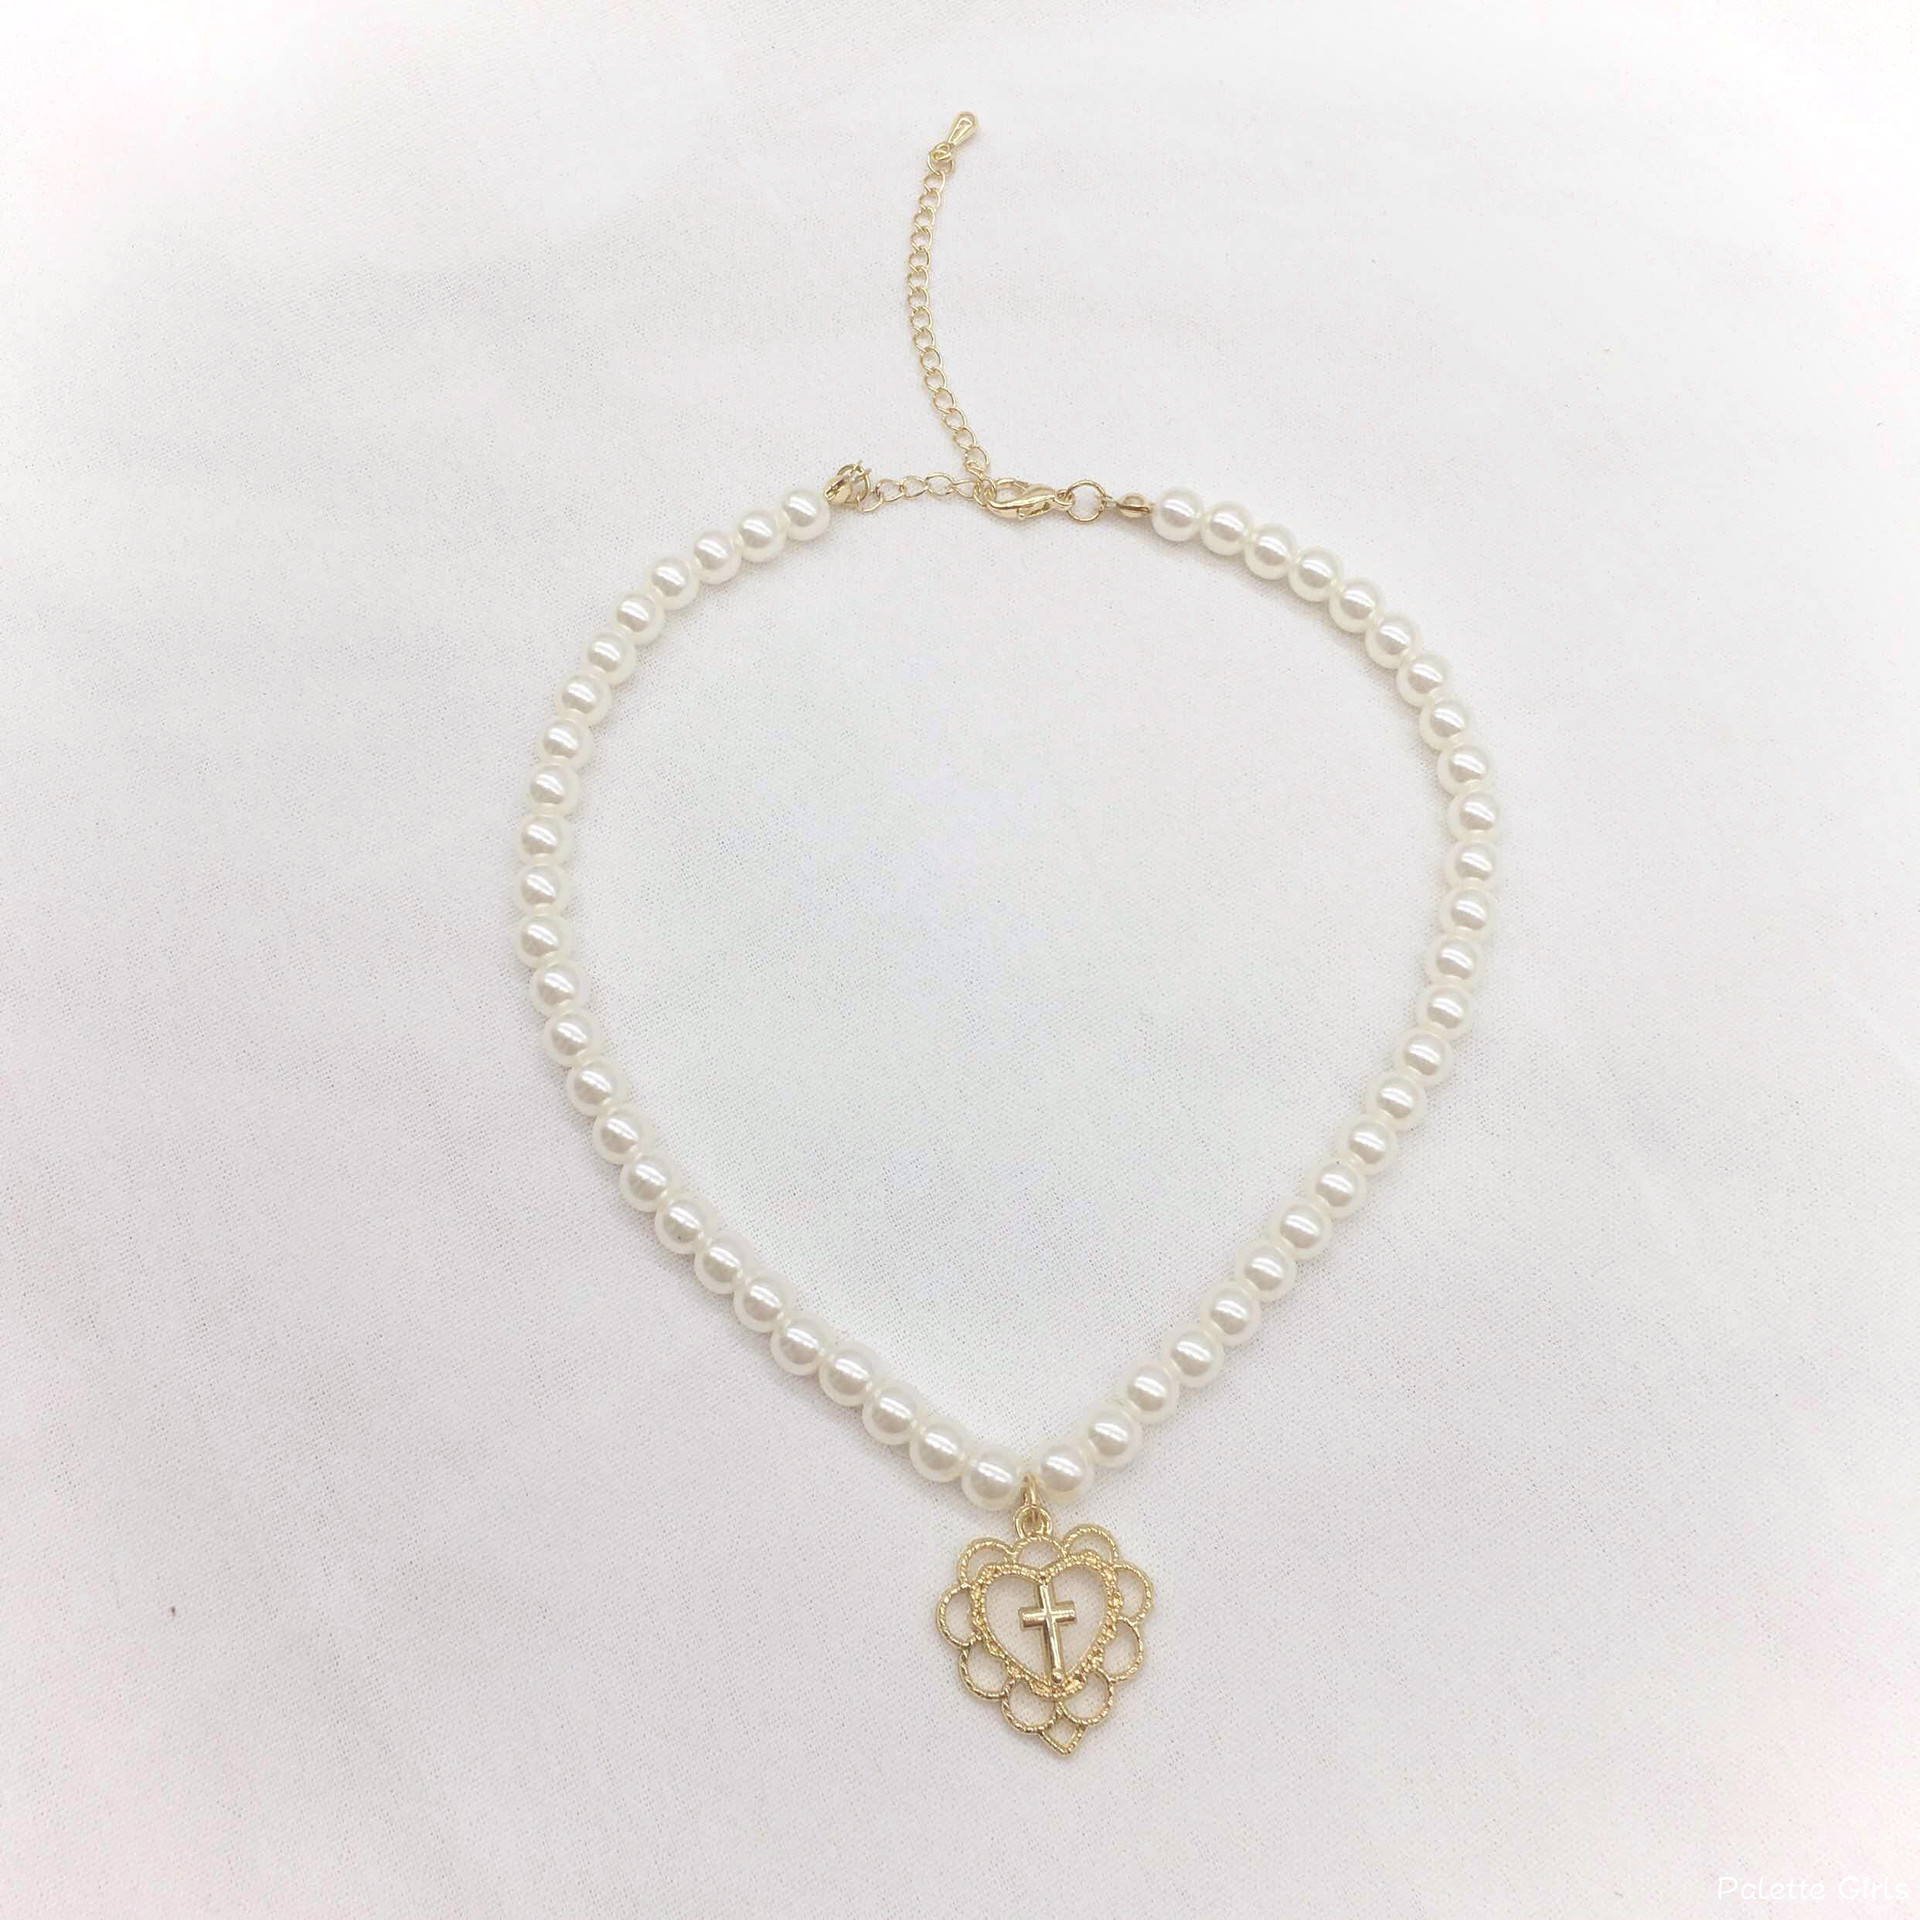 Vintage Cross Heart Pendant Imitation Pearls Choker Necklace for Women Gold Color 2020 Fashion Jewelry Clavicle Chain Necklaces